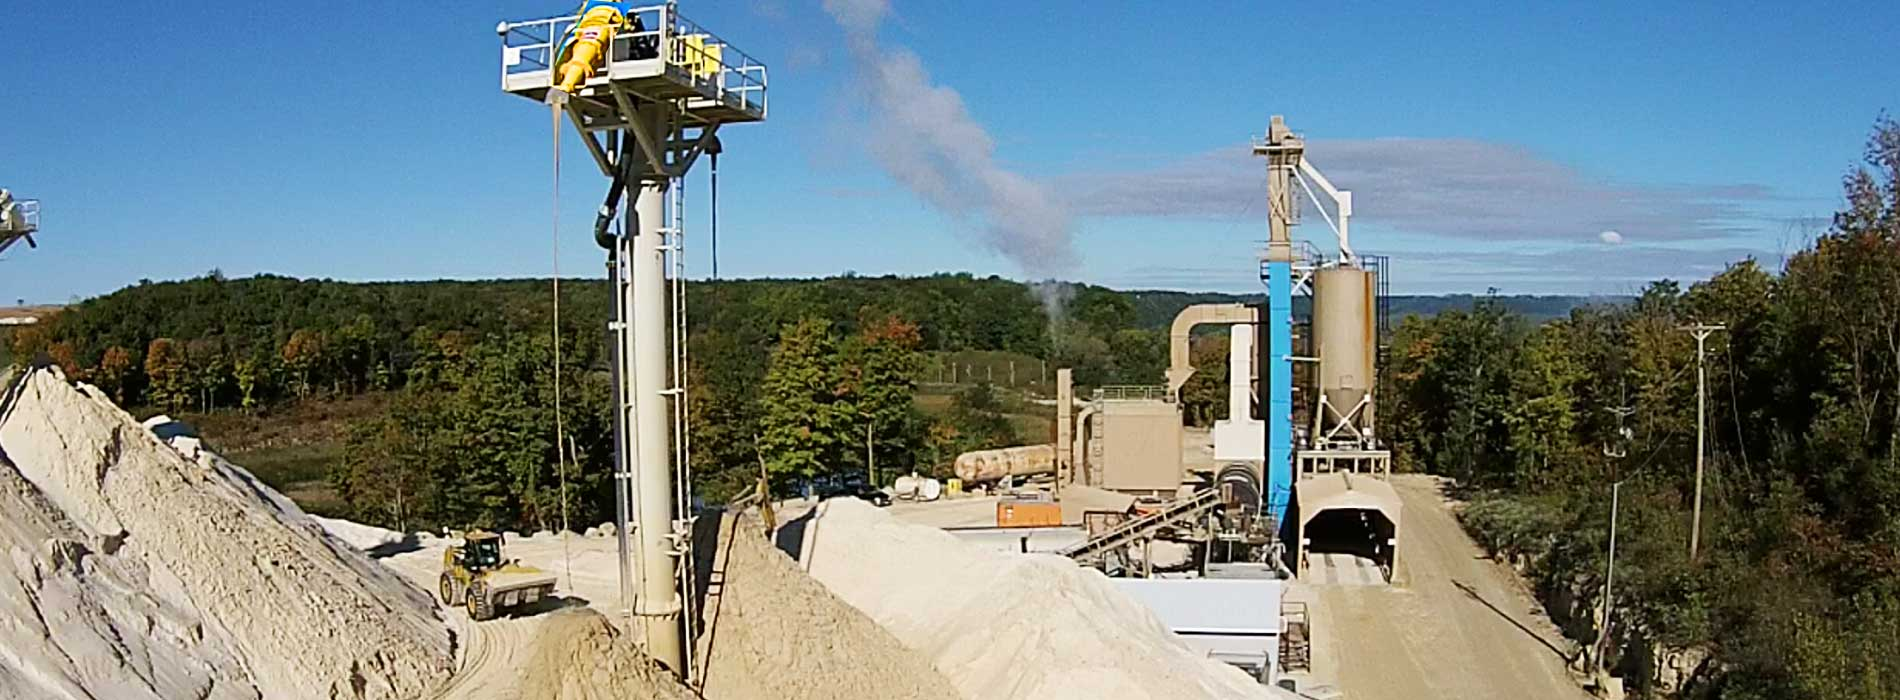 Pattison Company Producer of High Quality Proppants and Limestone Aggregates